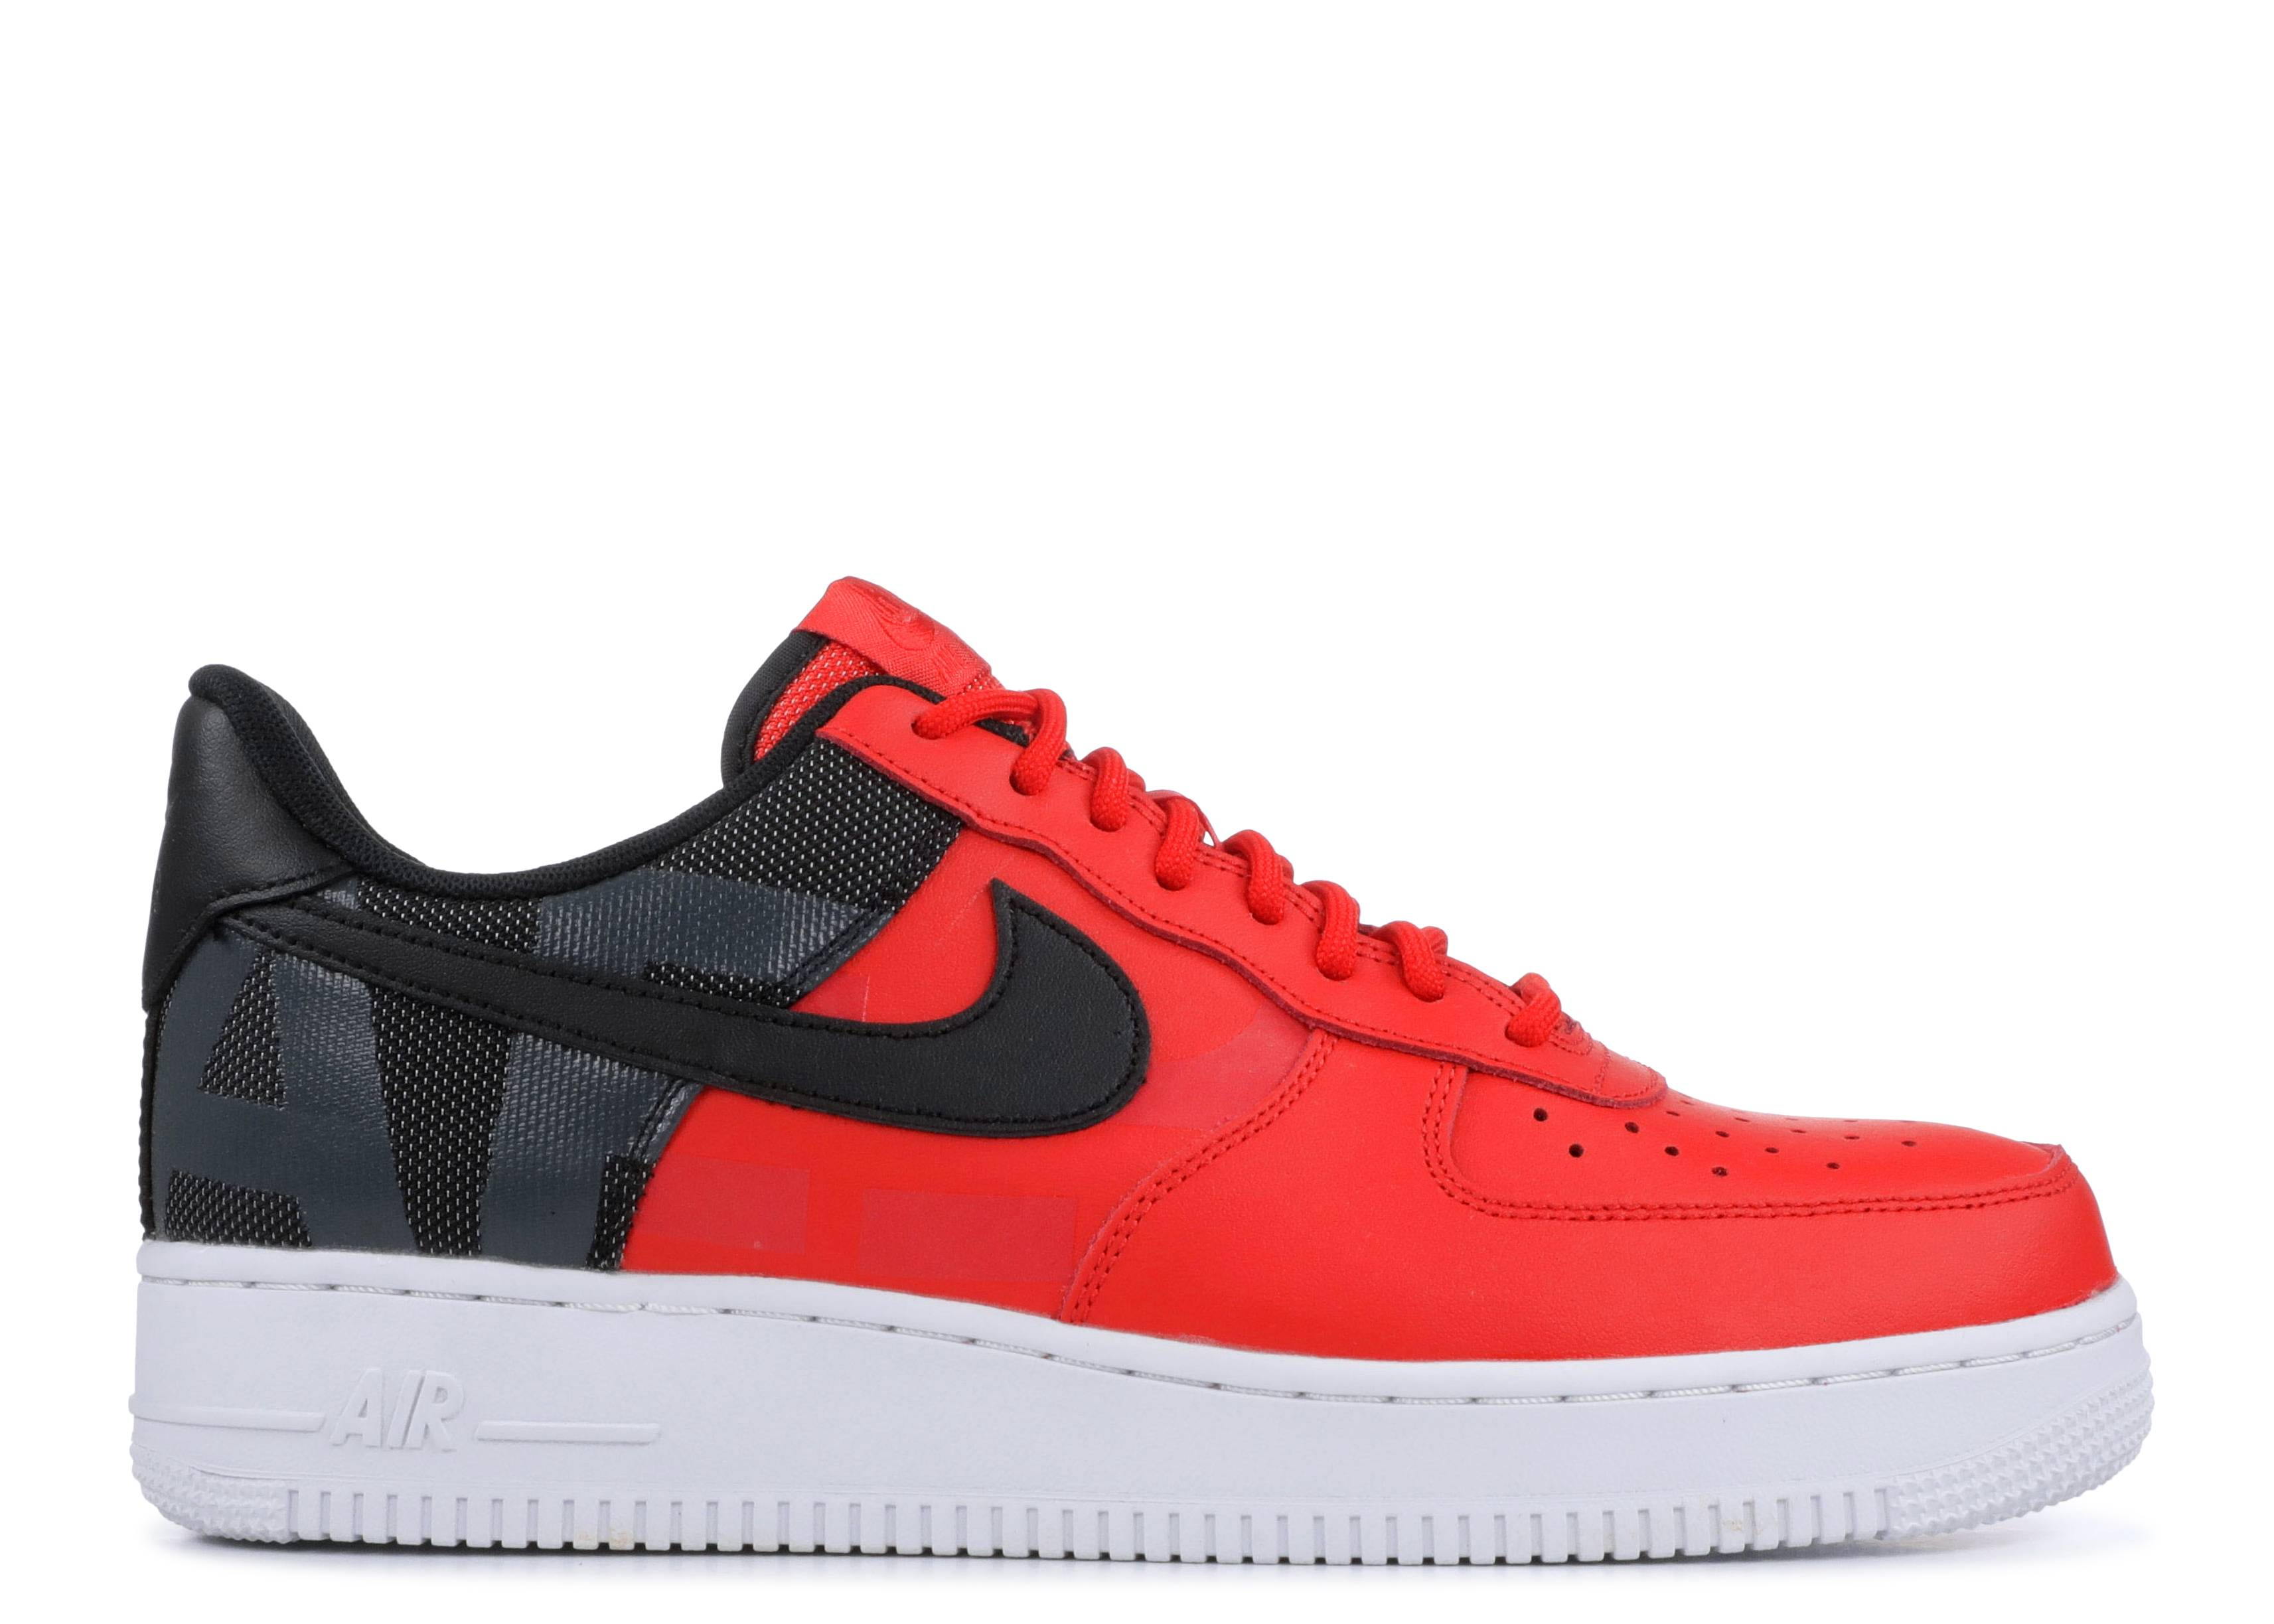 quality design 84d2b 04aa4 nike air force 1 low '07